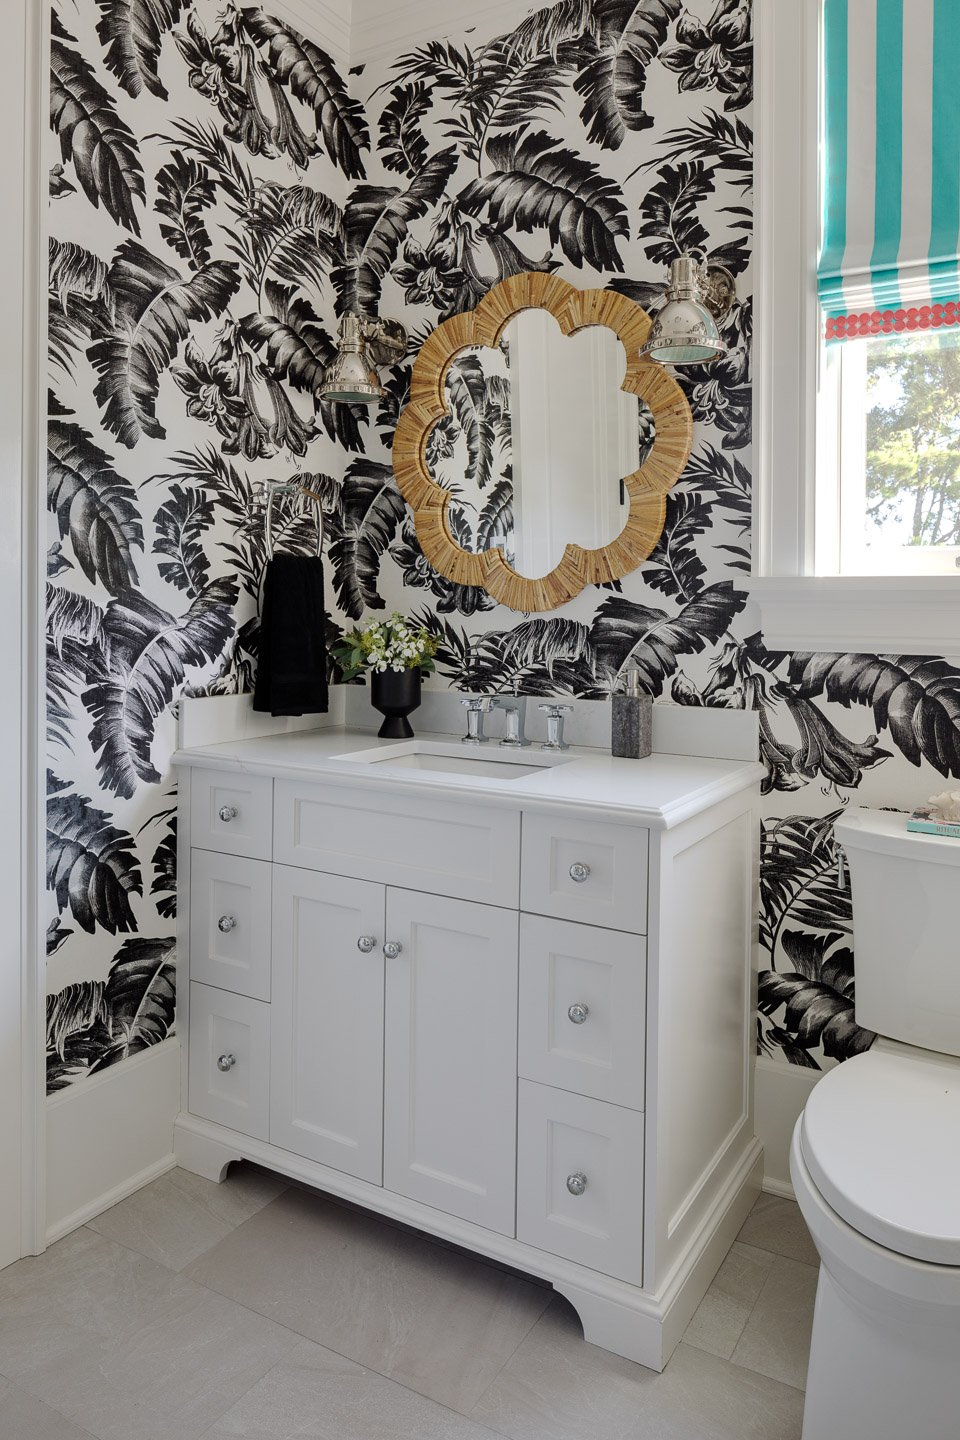 Blakely Interior Design | The Jersey Palm Project | Guest Bathroom